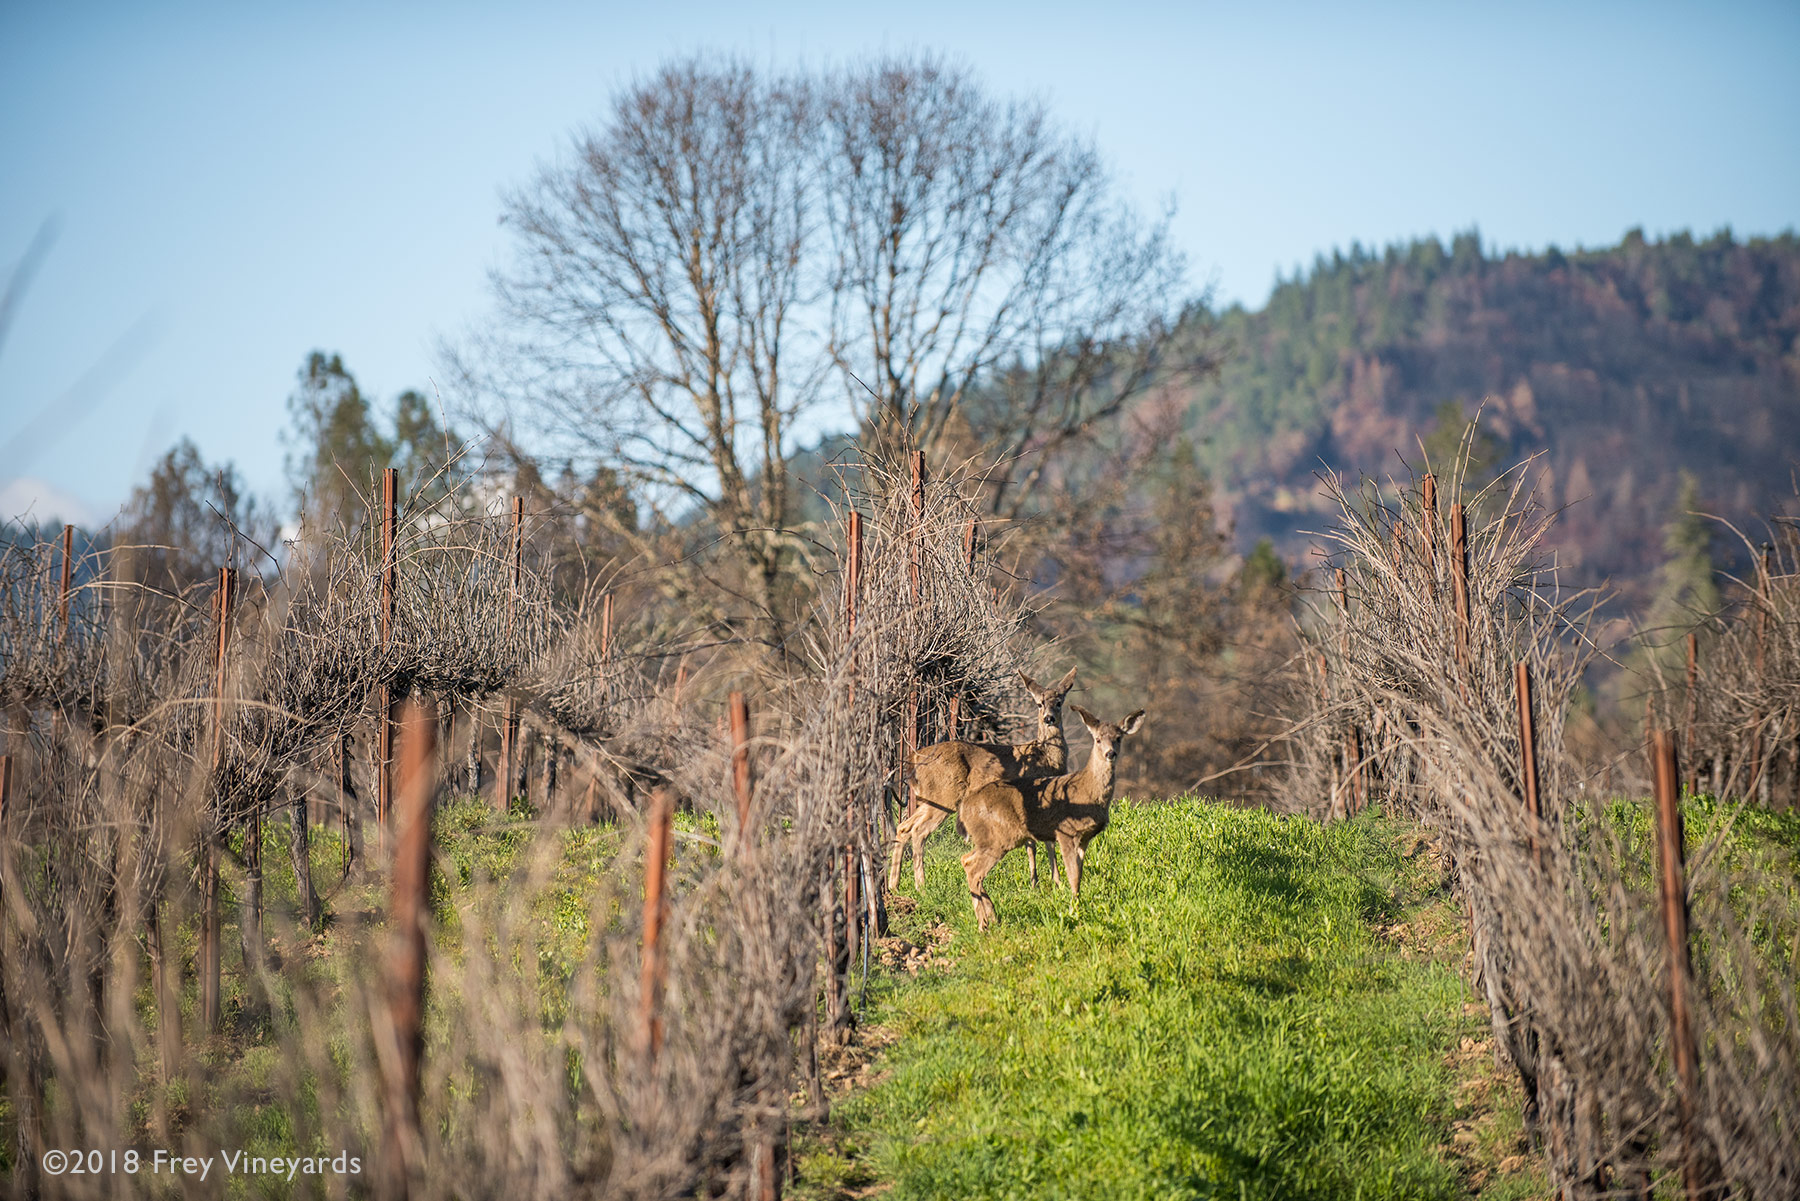 Deer at Frey Vineyards